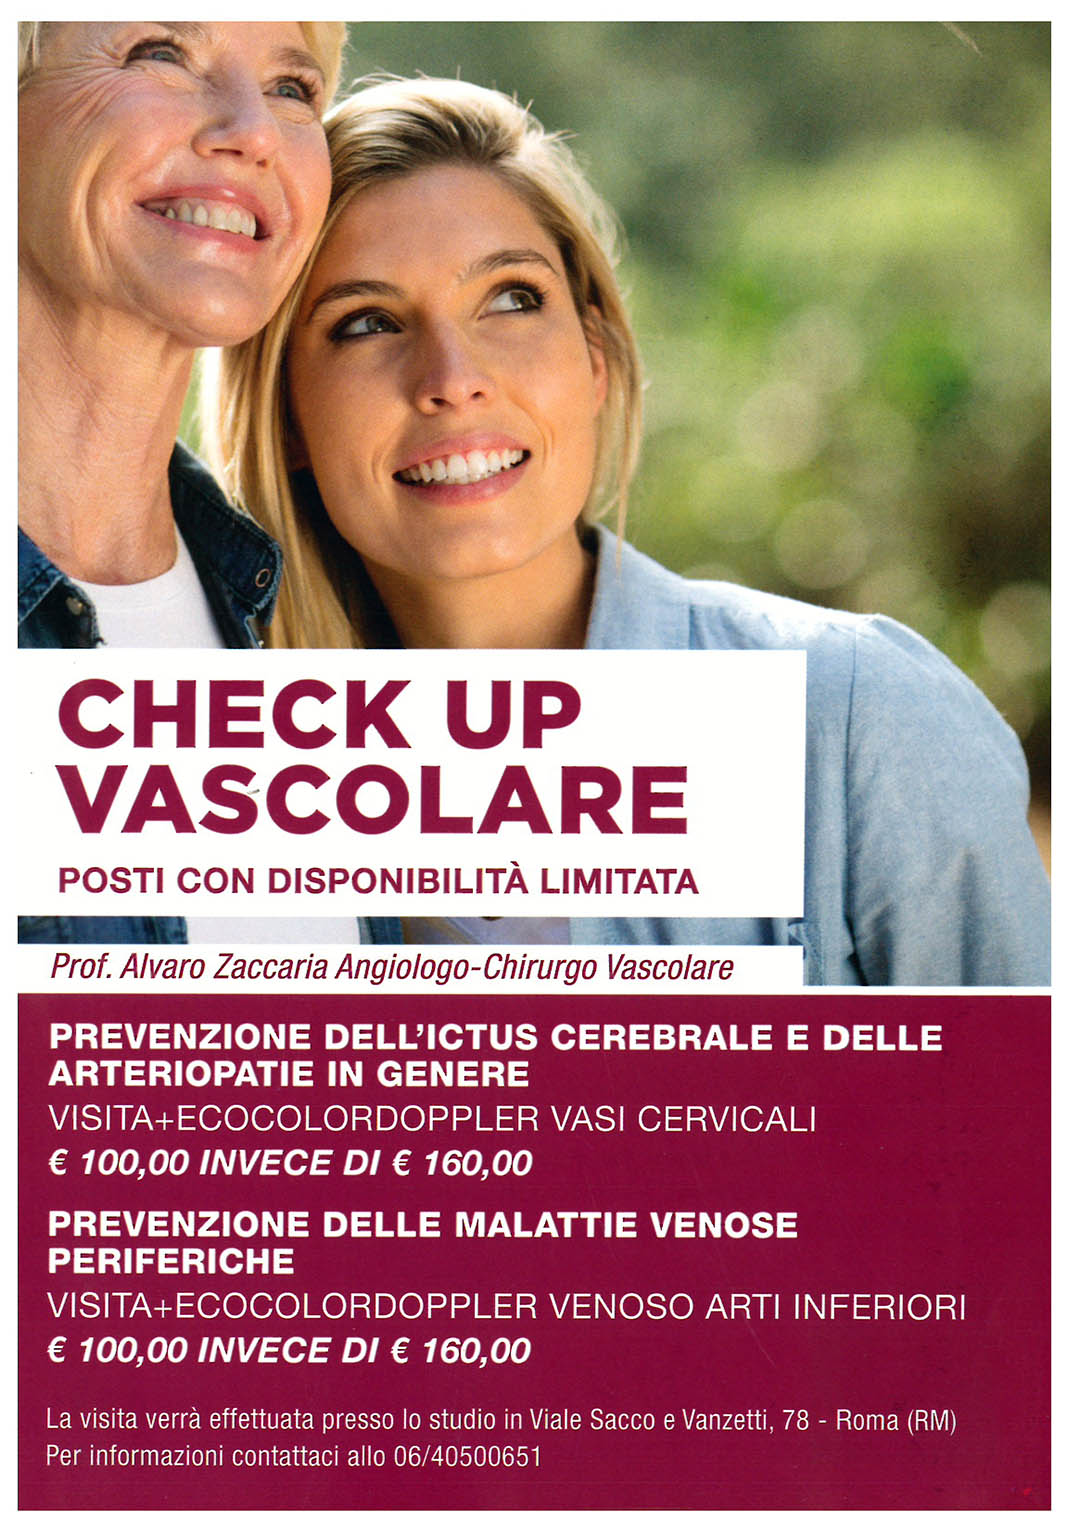 check-up-vascolare.jpg